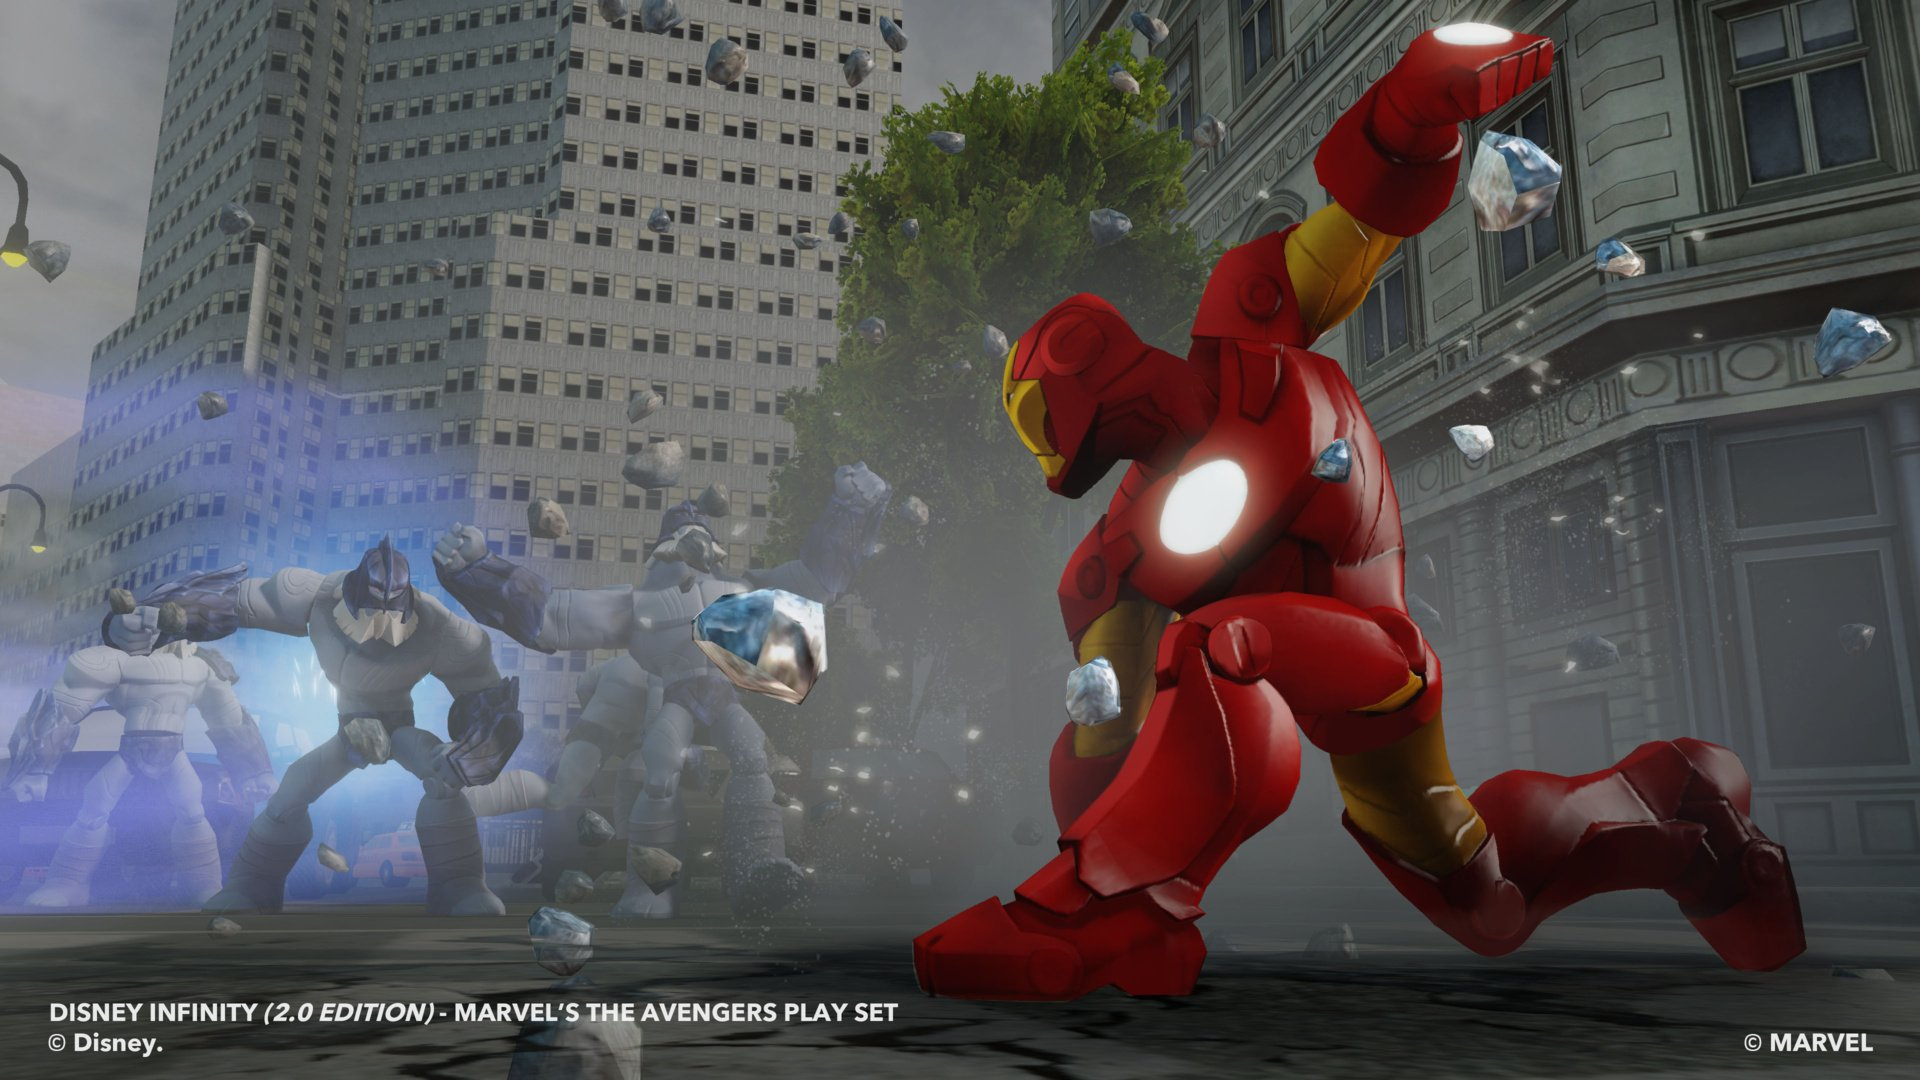 Disney Games For Ps4 : Disney infinity marvel super heroes edition ps